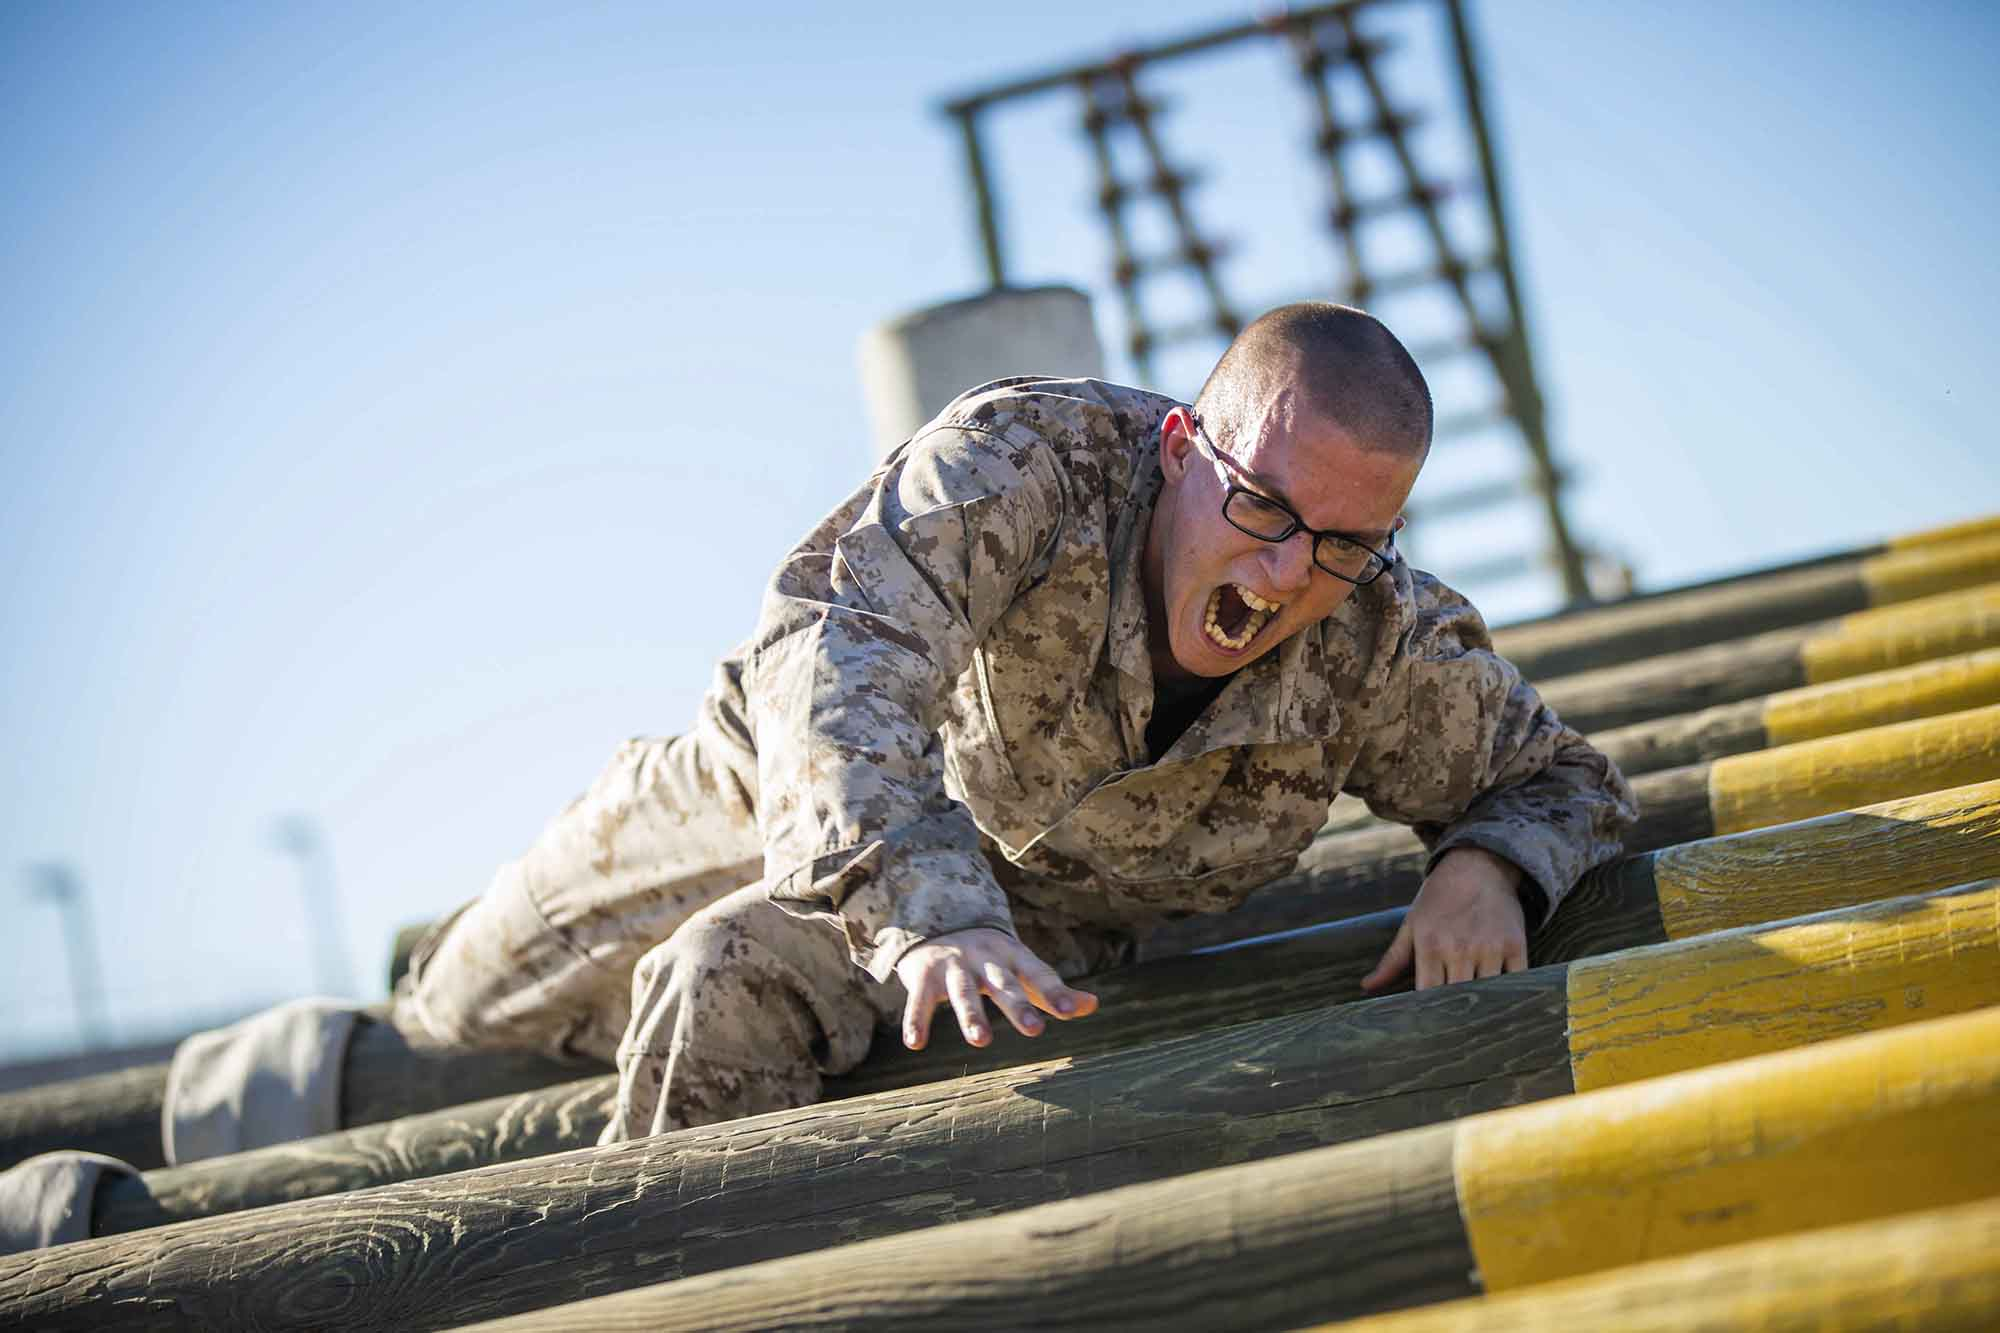 Taryn Bunton, a recruit with Lima Company, 3rd Recruit Training Battalion, participates in the confidence course at Marine Corps Recruit Depot, San Diego, Nov. 16, 2020. (Lance Cpl. Zachary T. Beatty/Marine Corps)